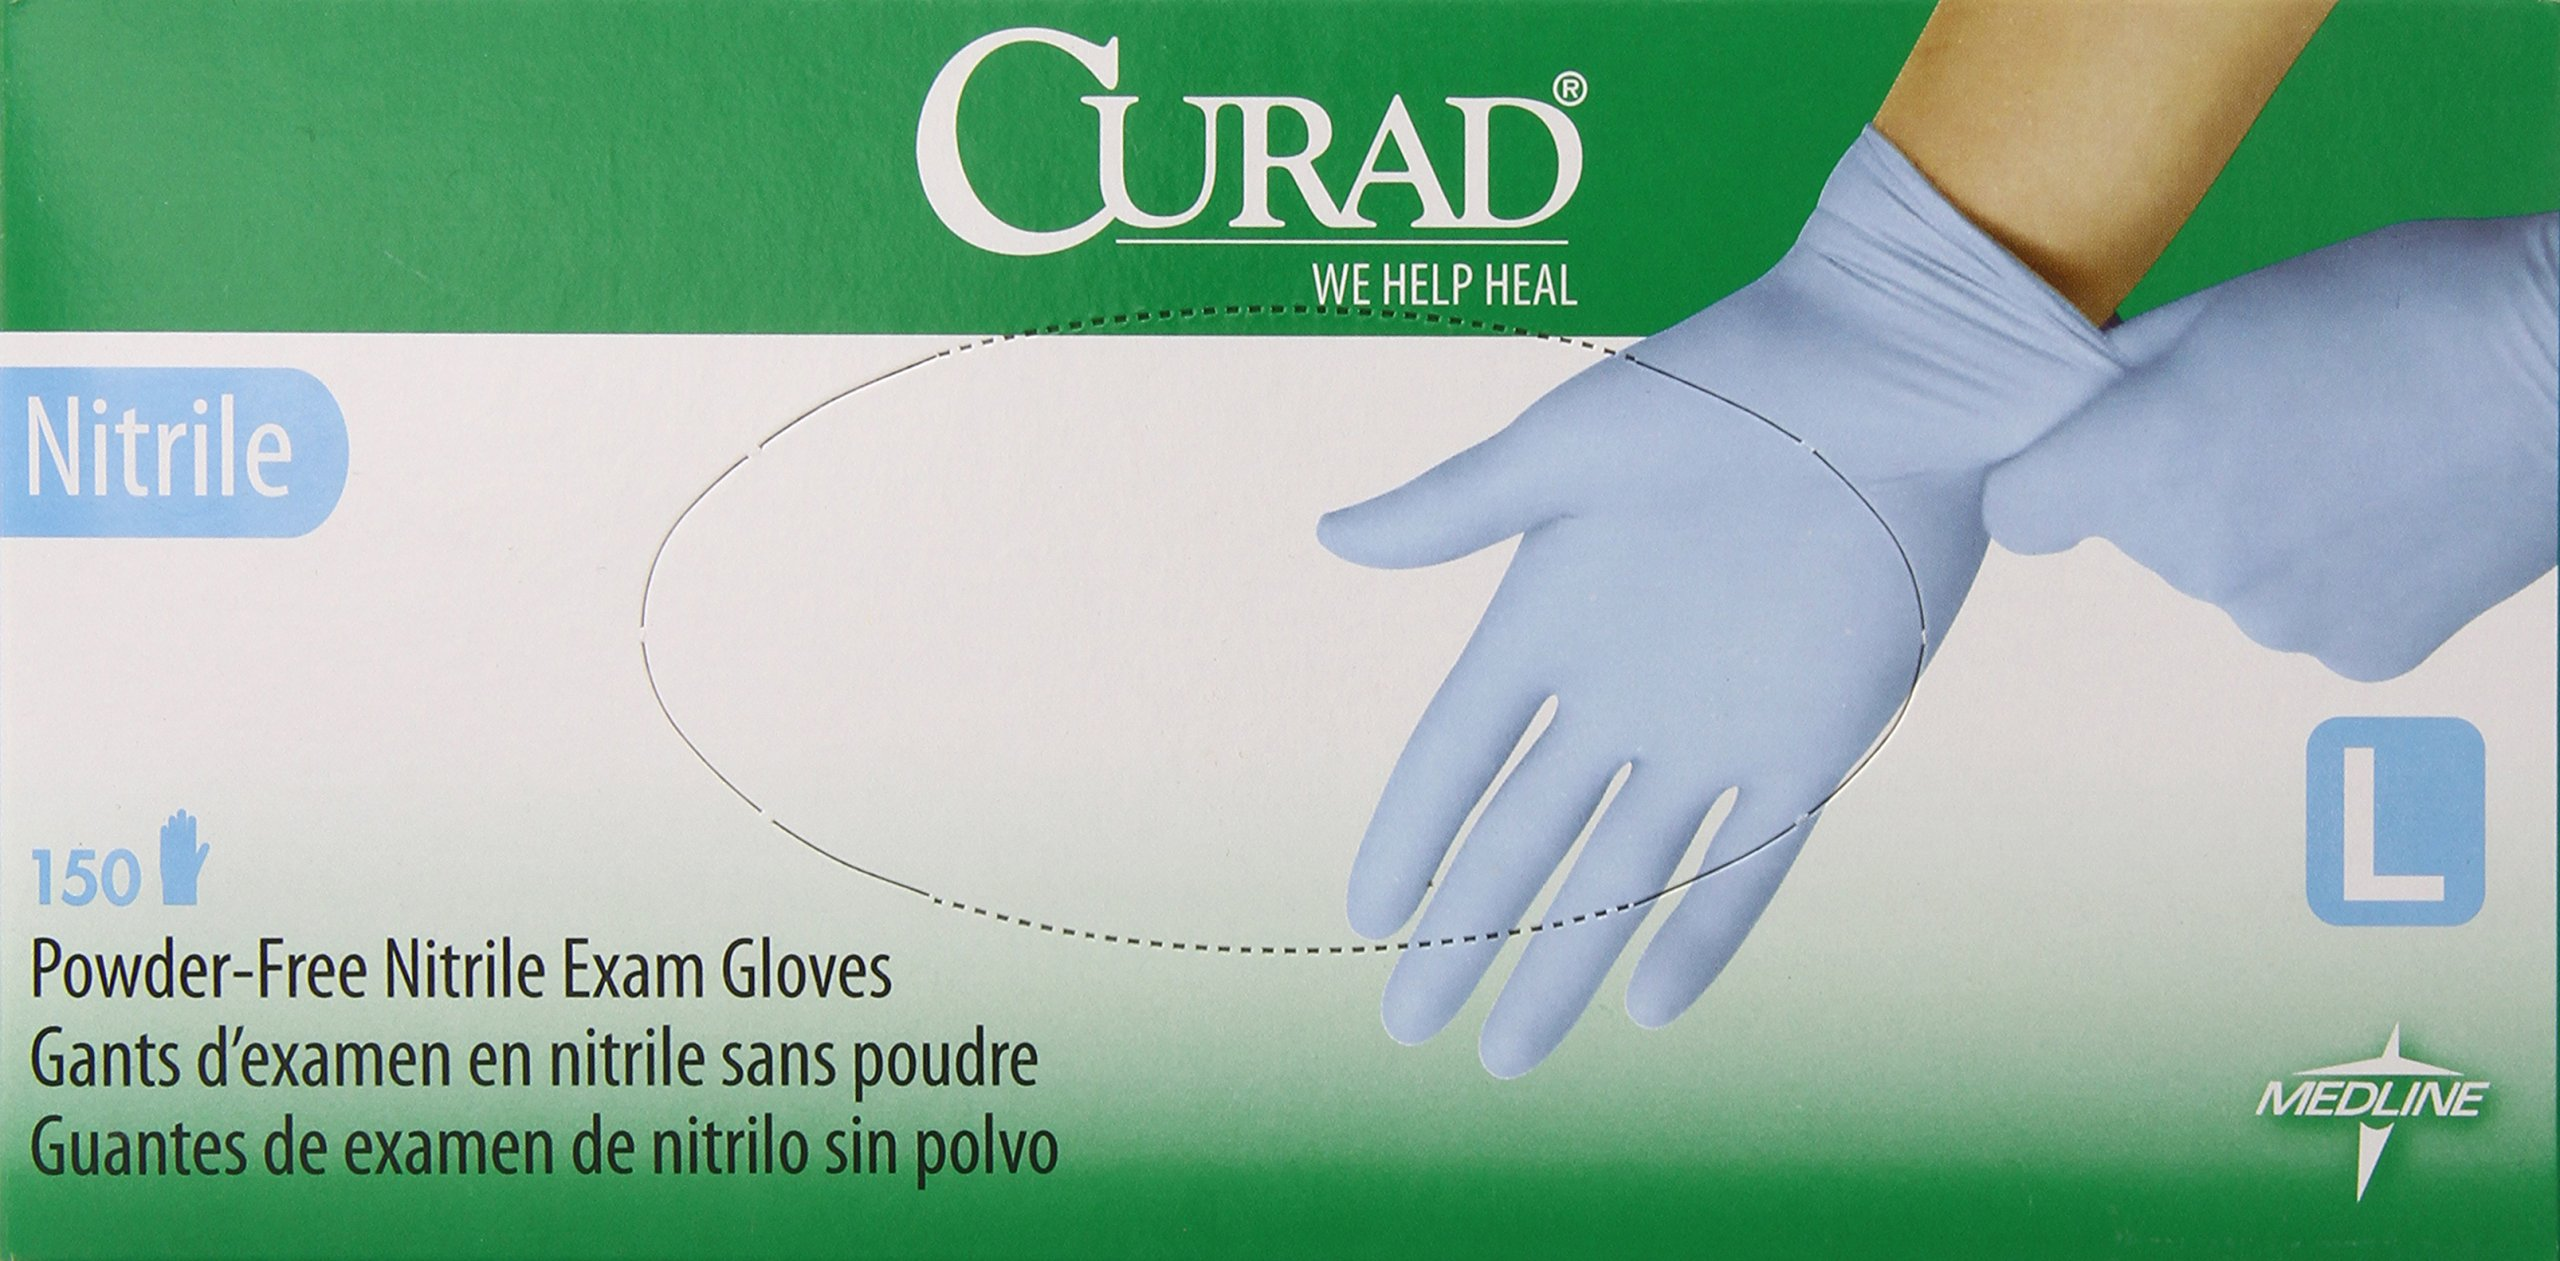 Curad Powder-Free Nitrile, Large, 150 Count by Curad